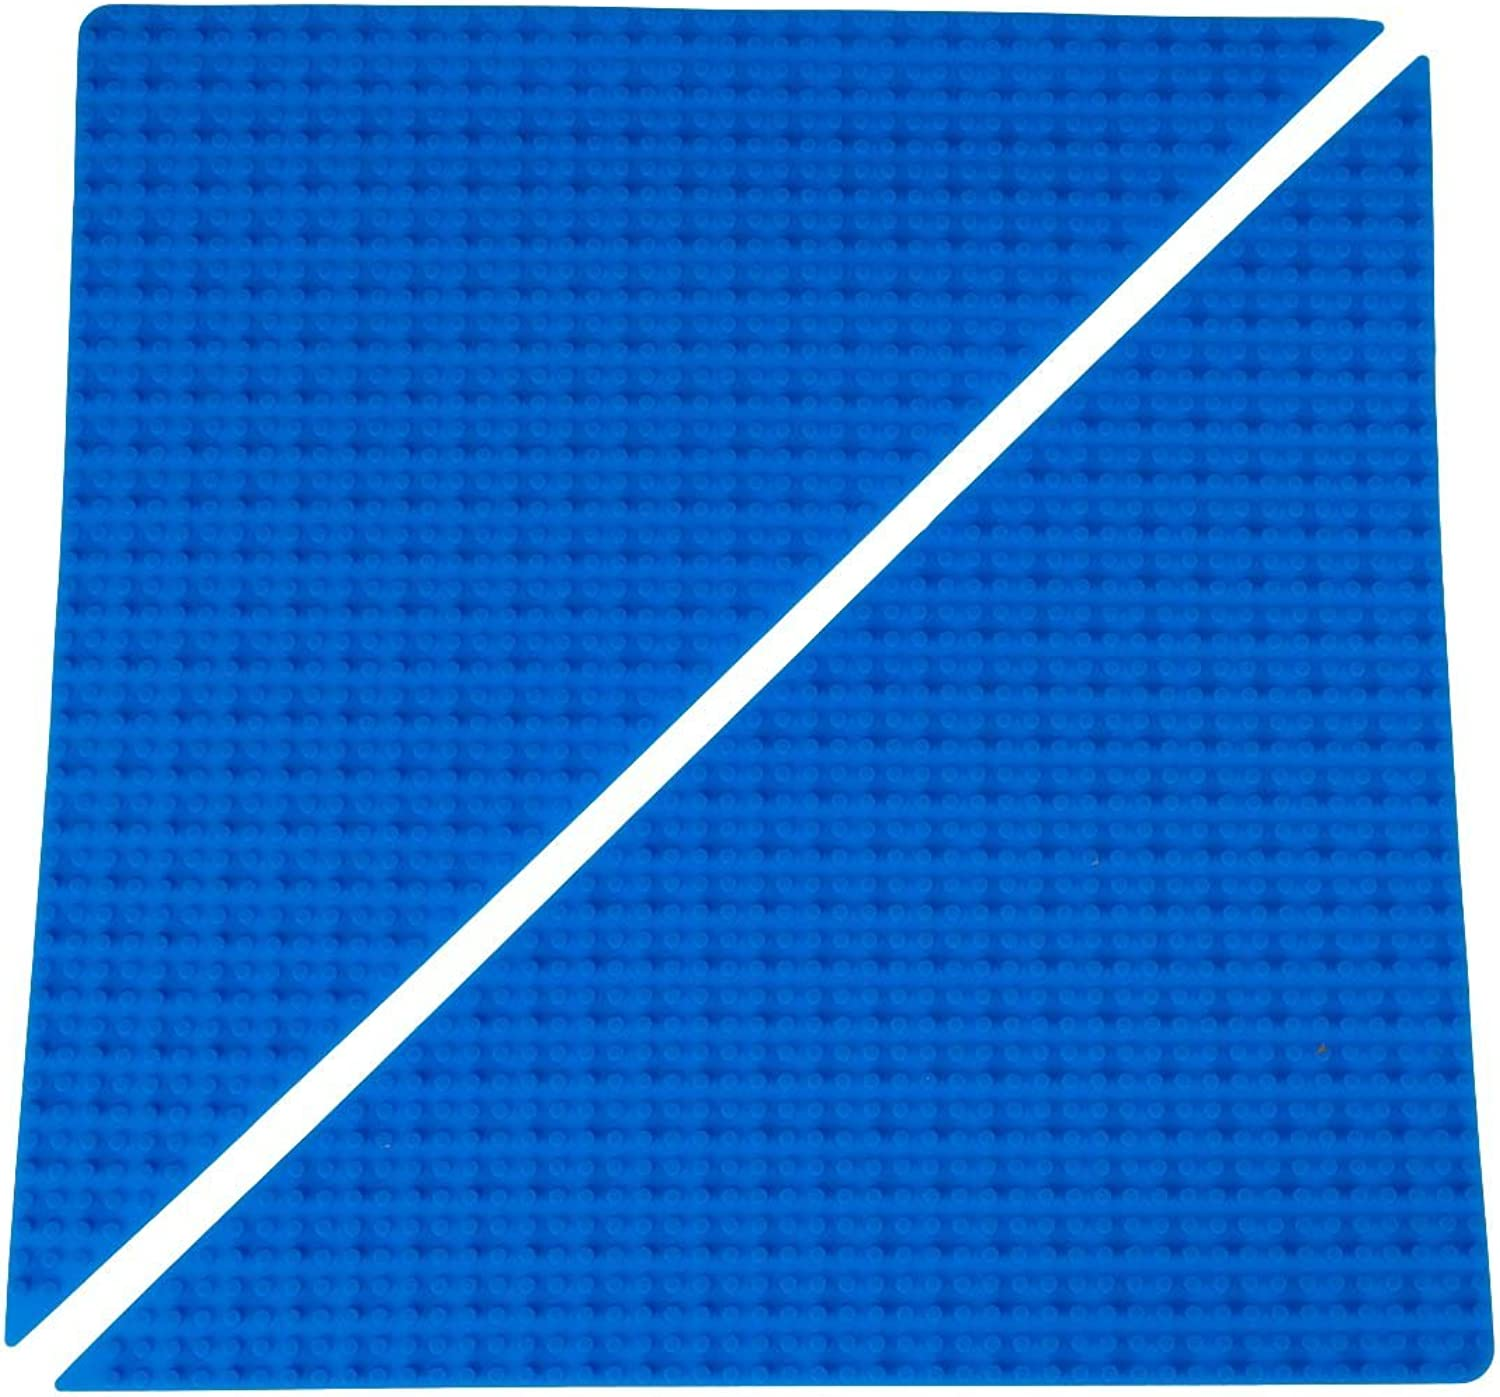 Classic bluee Right Triangle Roll Up Building Mat by Strictly Briks   15 x15  Double Sided Silicone Travel Mat   100% Compatible With All Major Brands   Drawstring Bag & Strap Included   2 Pack